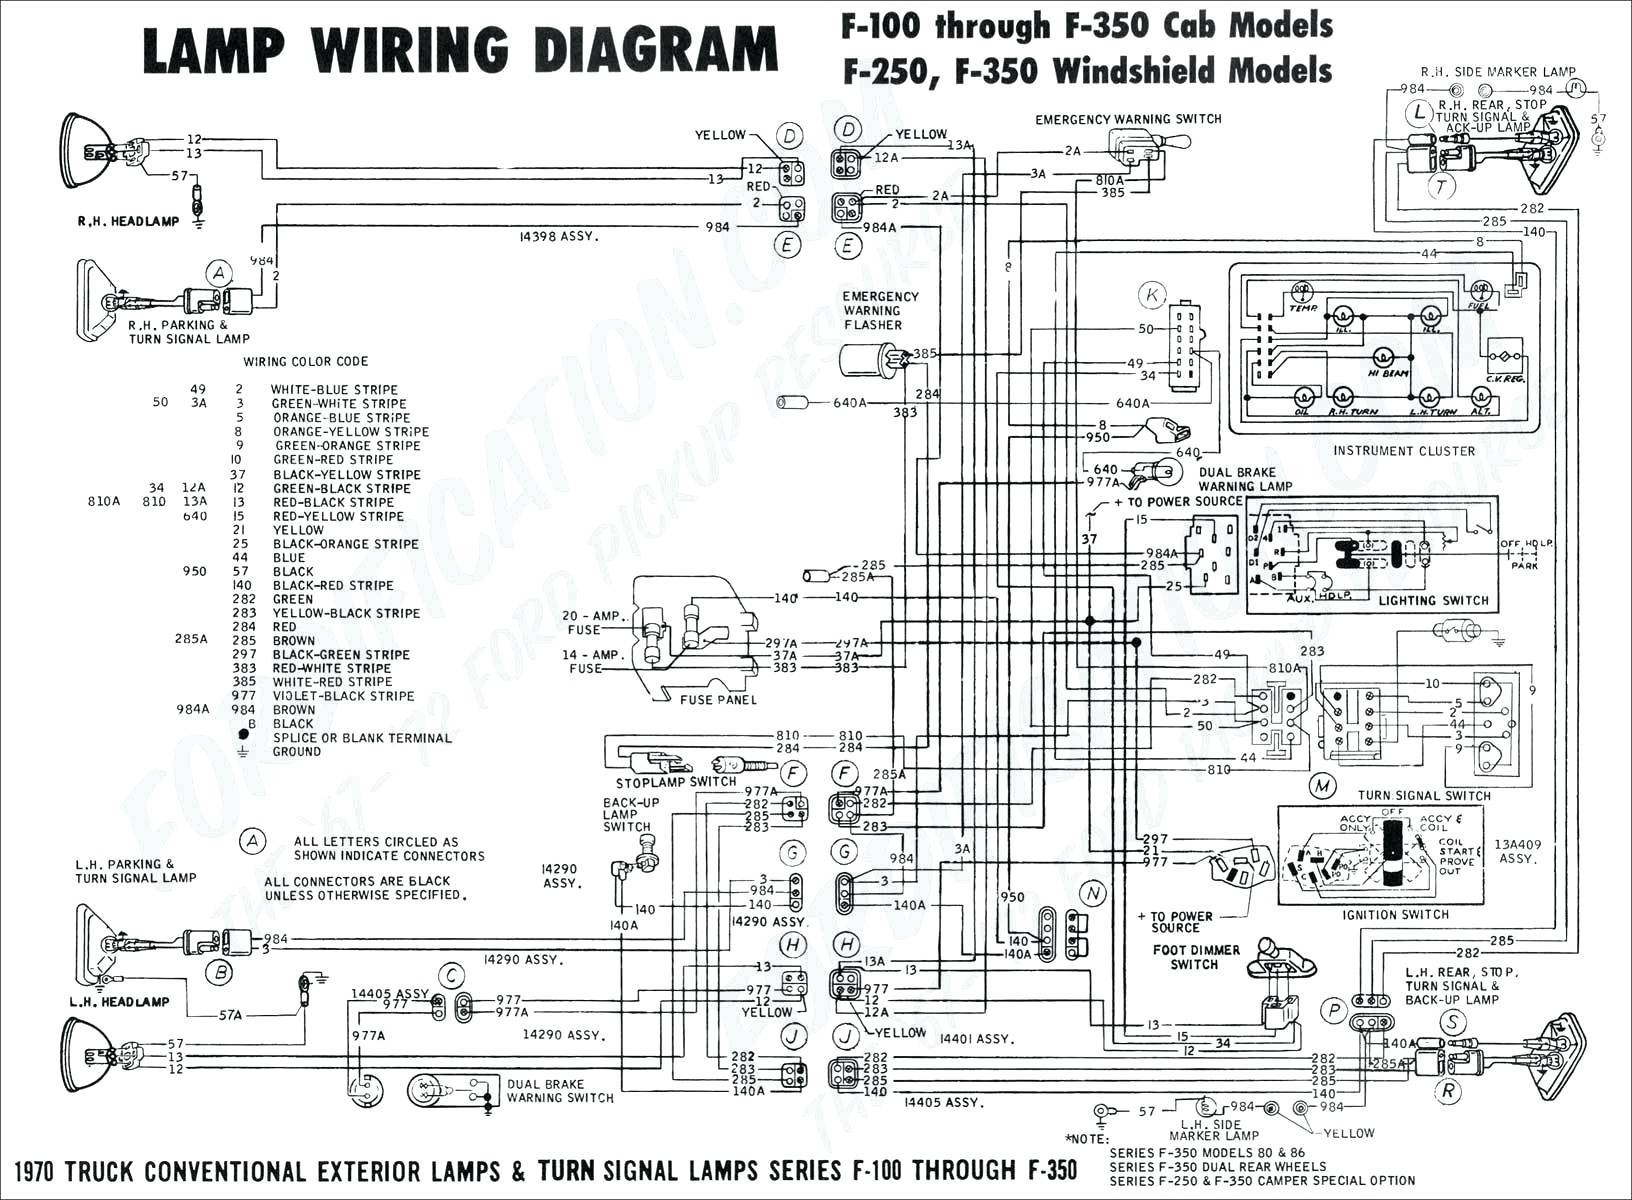 Ford Escape Engine Diagram ford 1 9 Engine Diagram Another Blog About Wiring Diagram • Of Ford Escape Engine Diagram